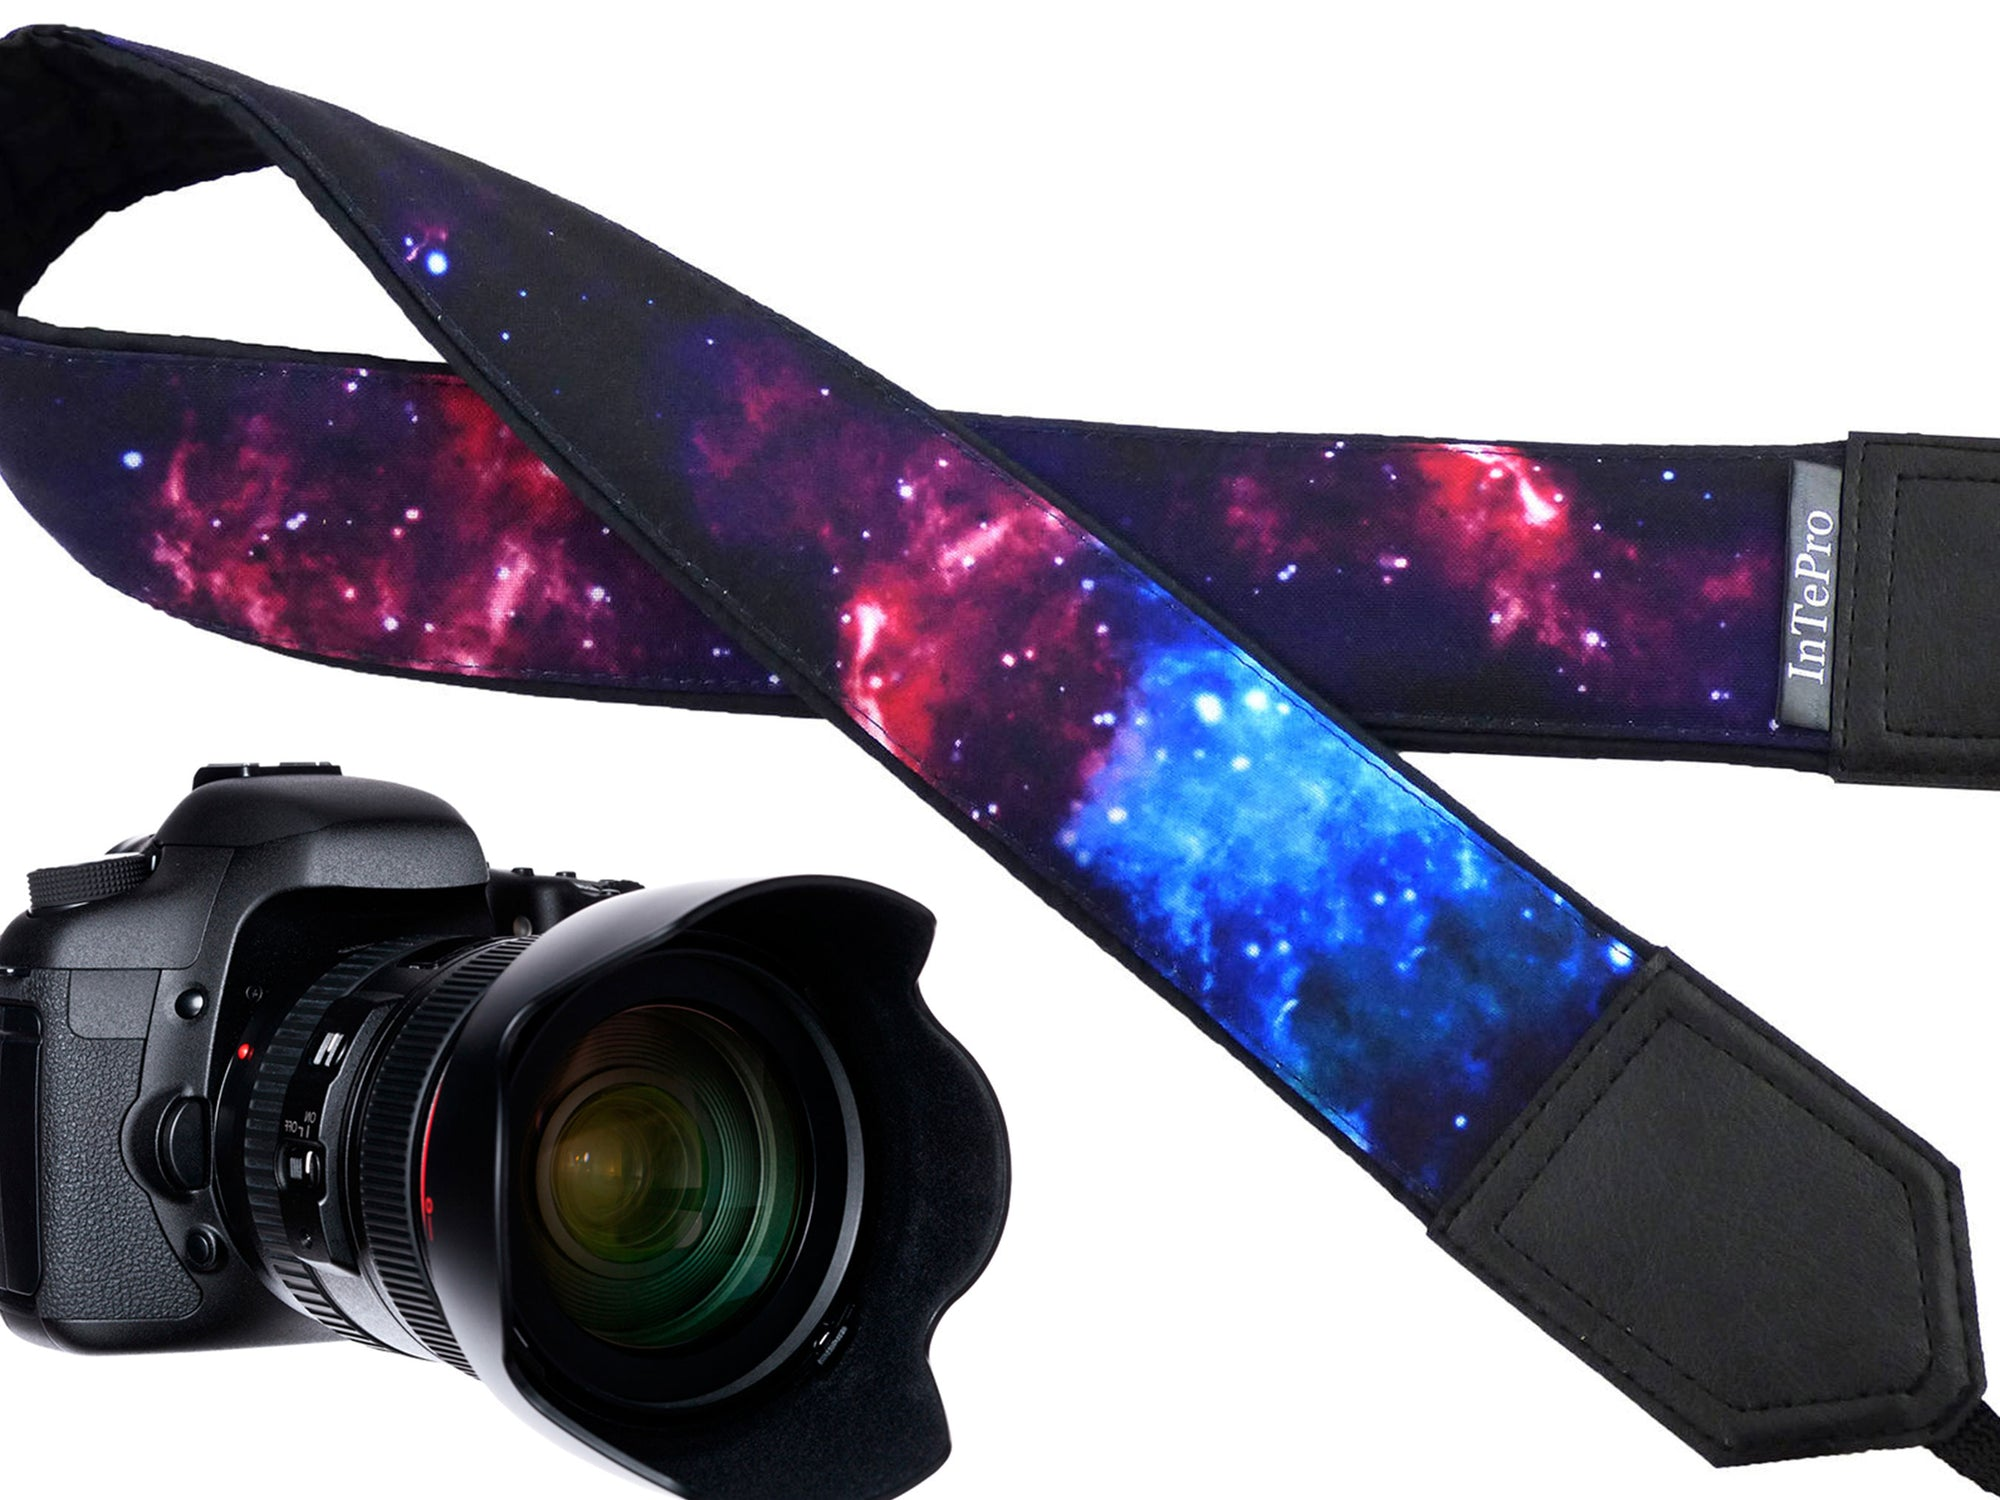 Personalized camera strap with galaxy design. Space camera strap suitable for all mirror and mirroless cameras.